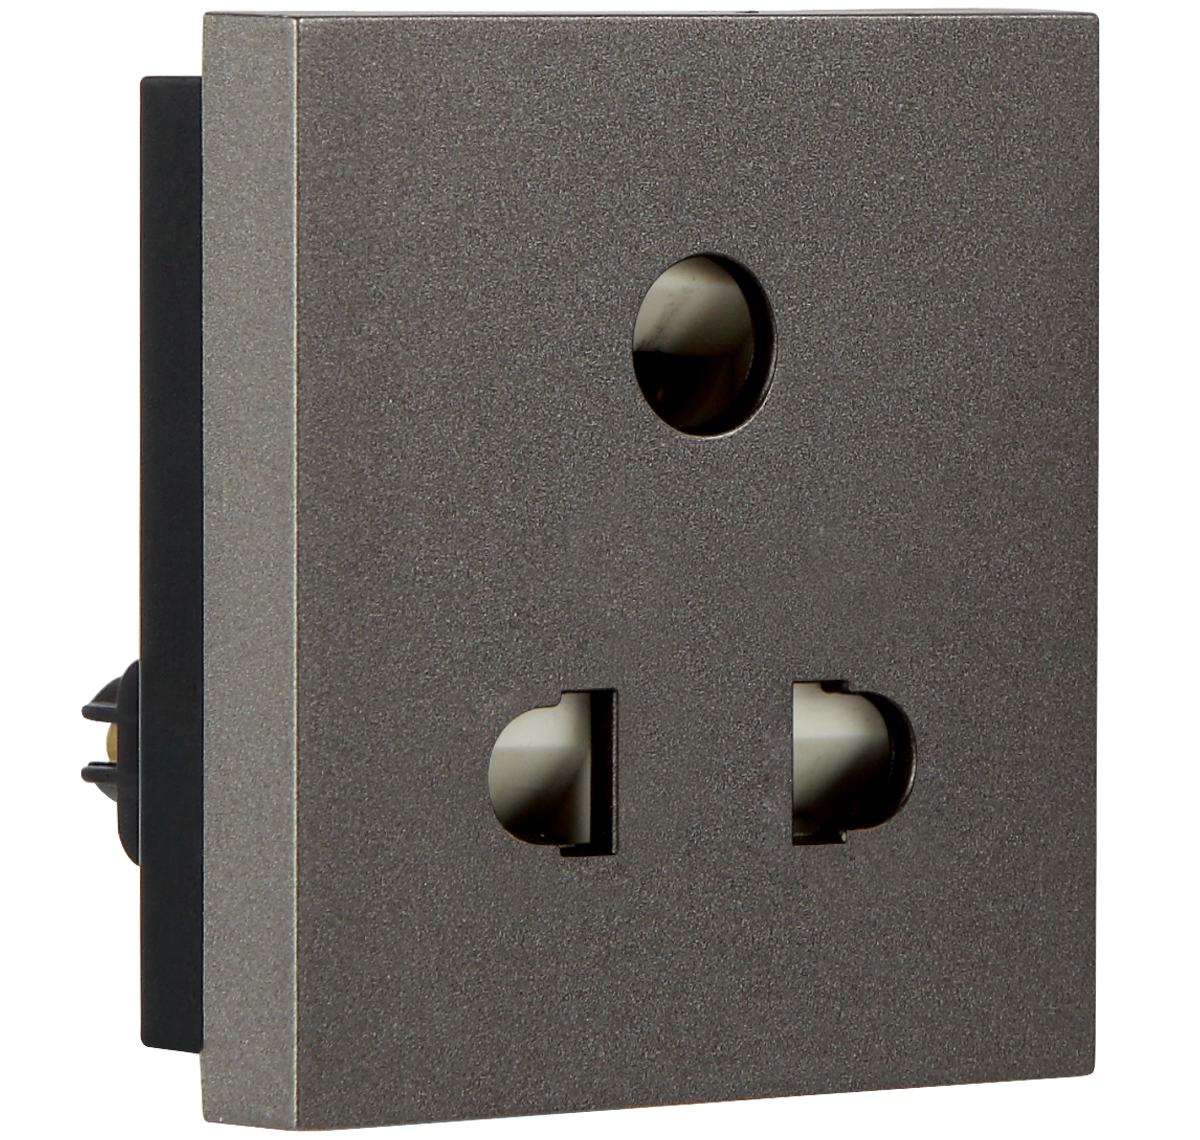 Crabtree - 6 A 3 Pin Socket